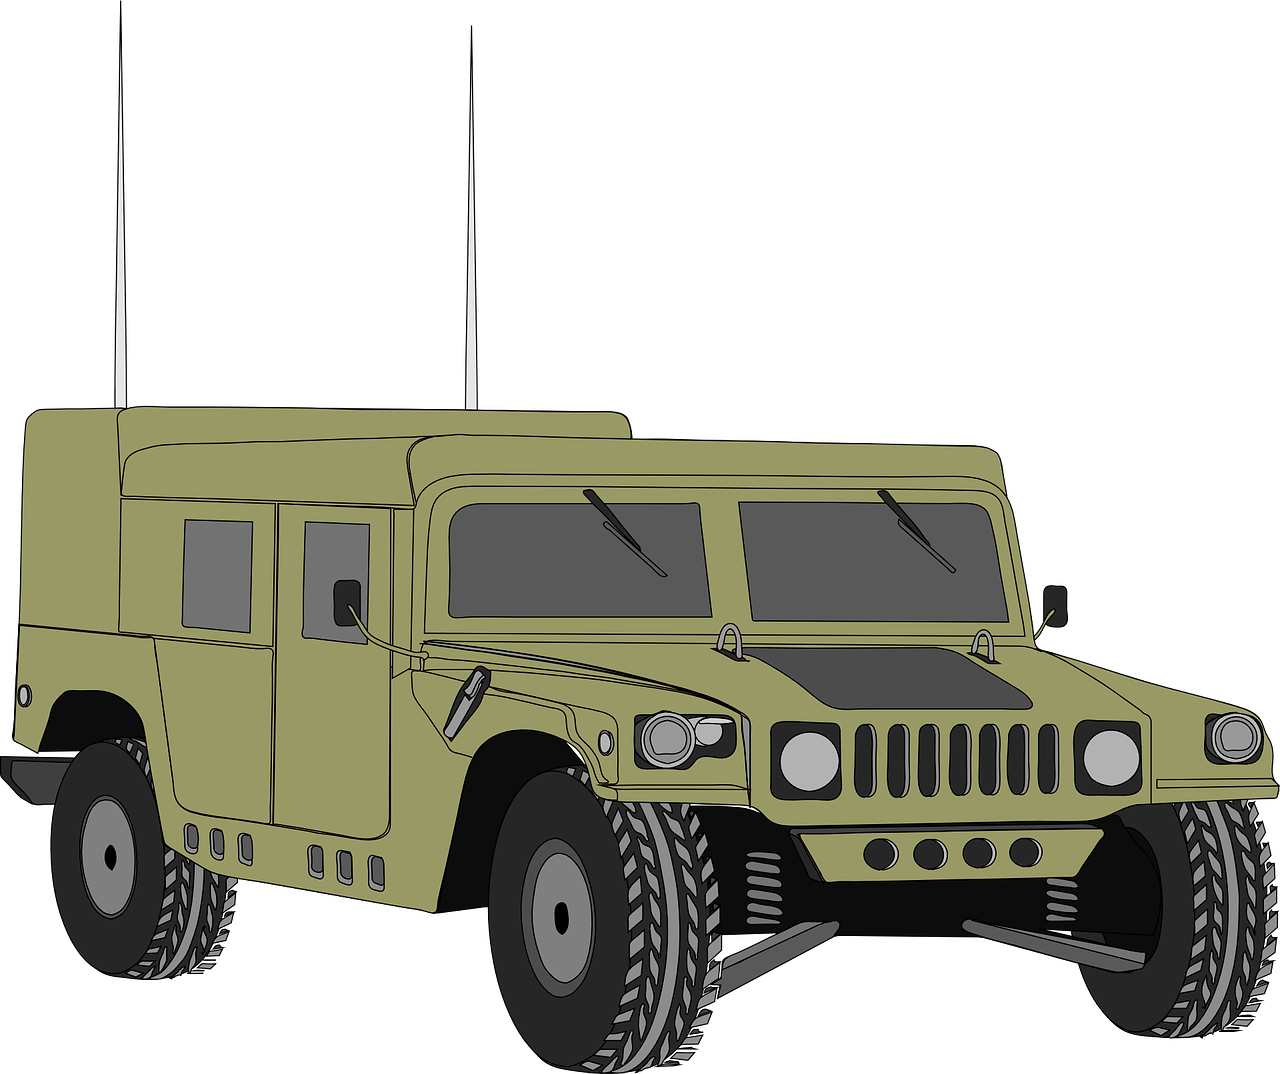 hummer vehicle humvee free photo